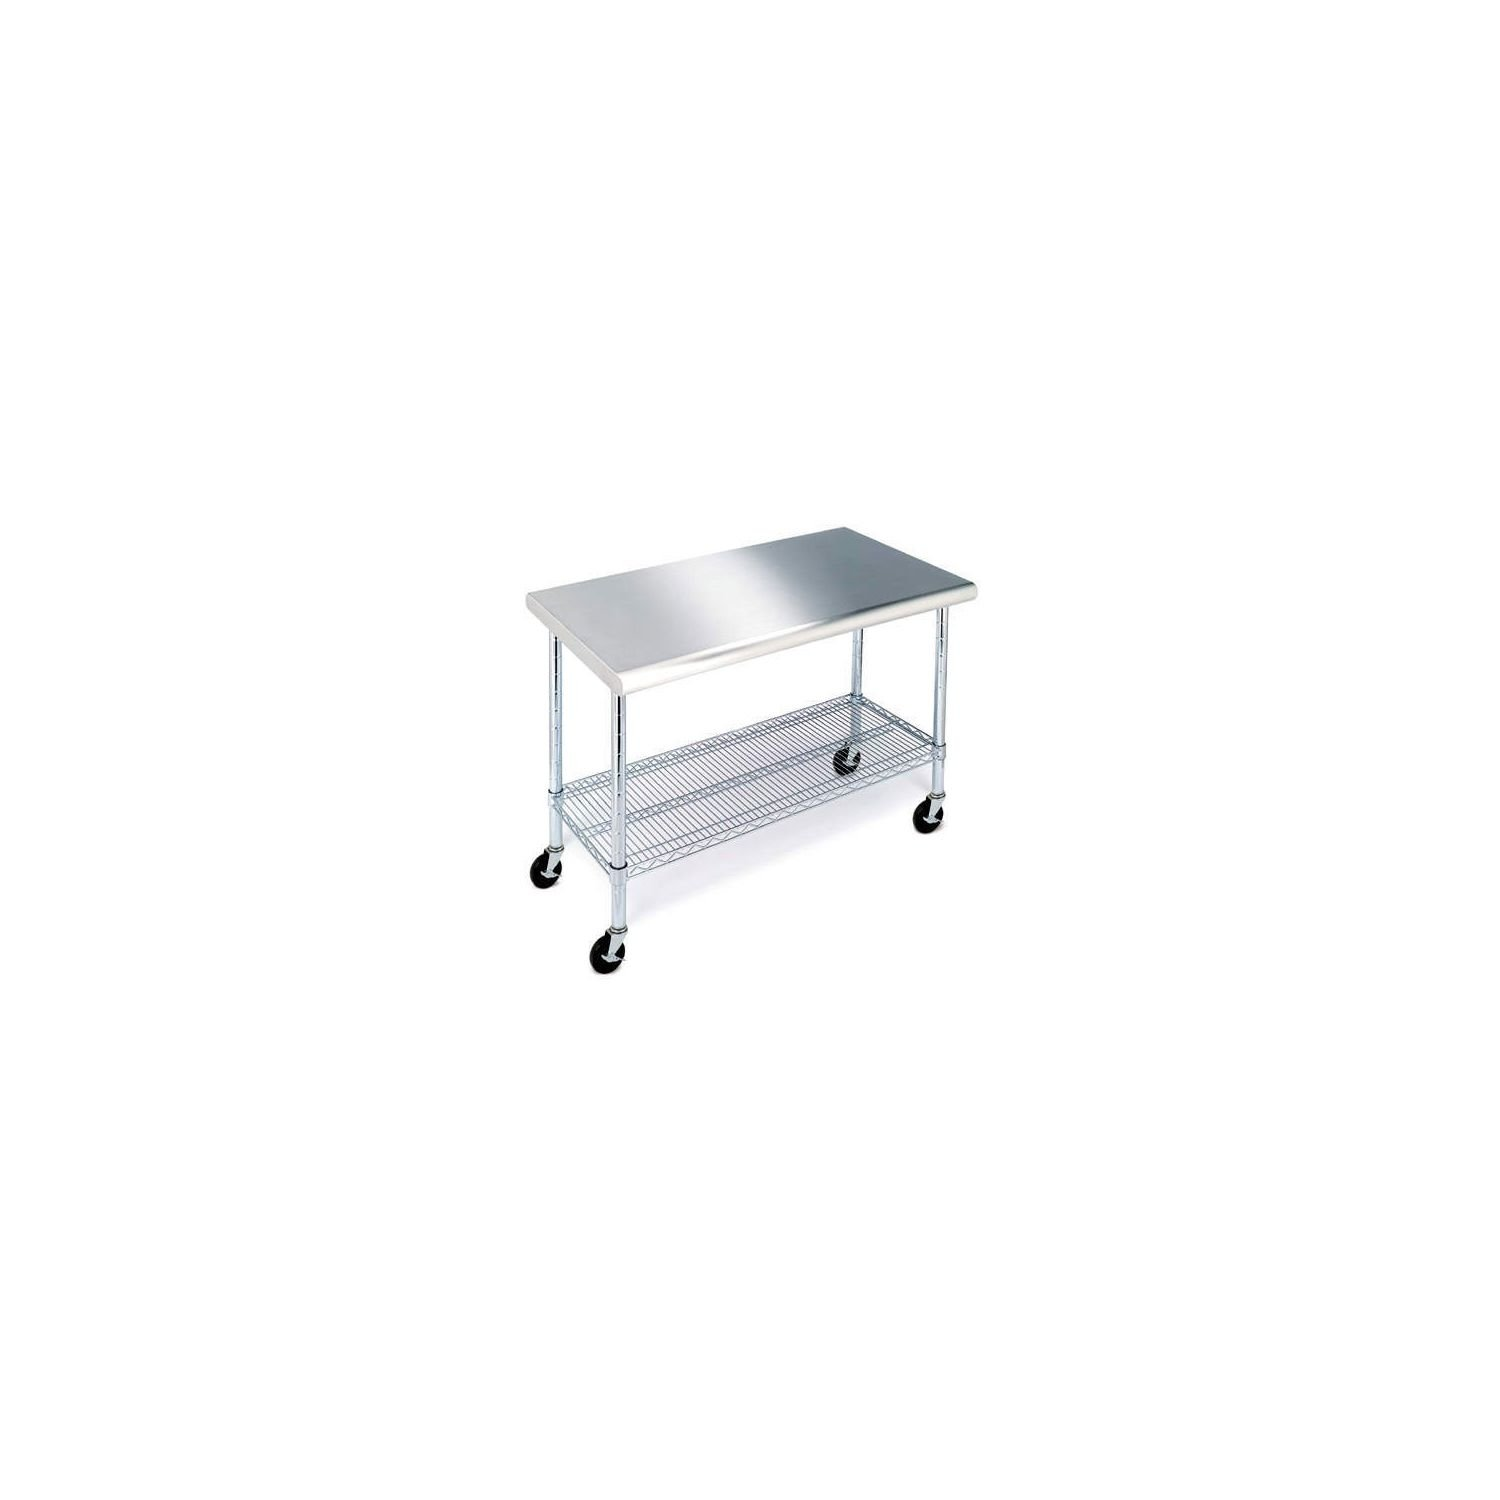 Stainless Steel Work Table - 49' SM 18308W